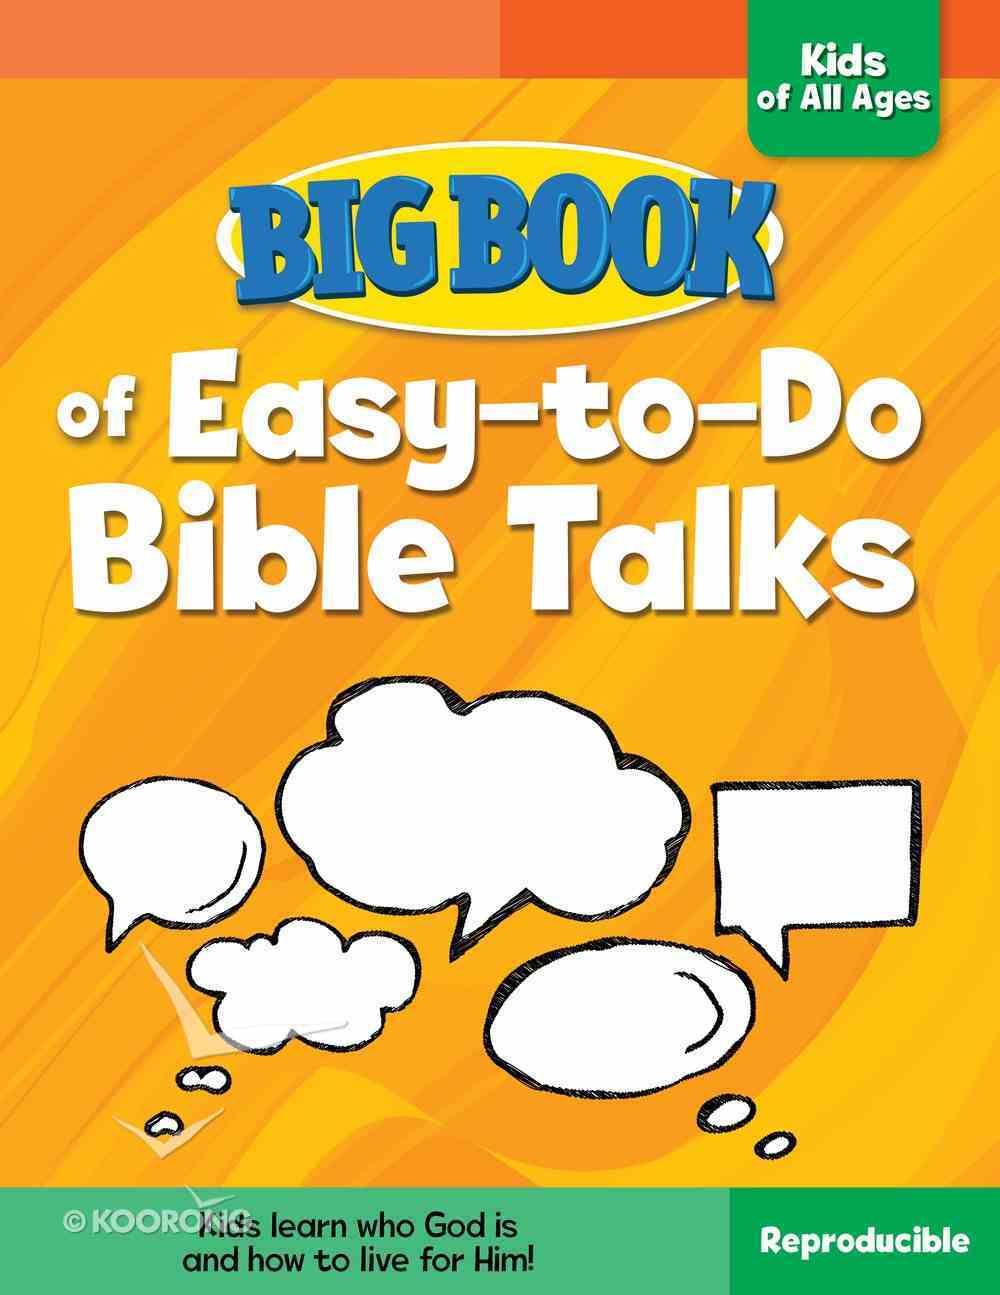 Big Book of Easy-To-Do Bible Talks For Kids of All Ages (Reproducible) Paperback